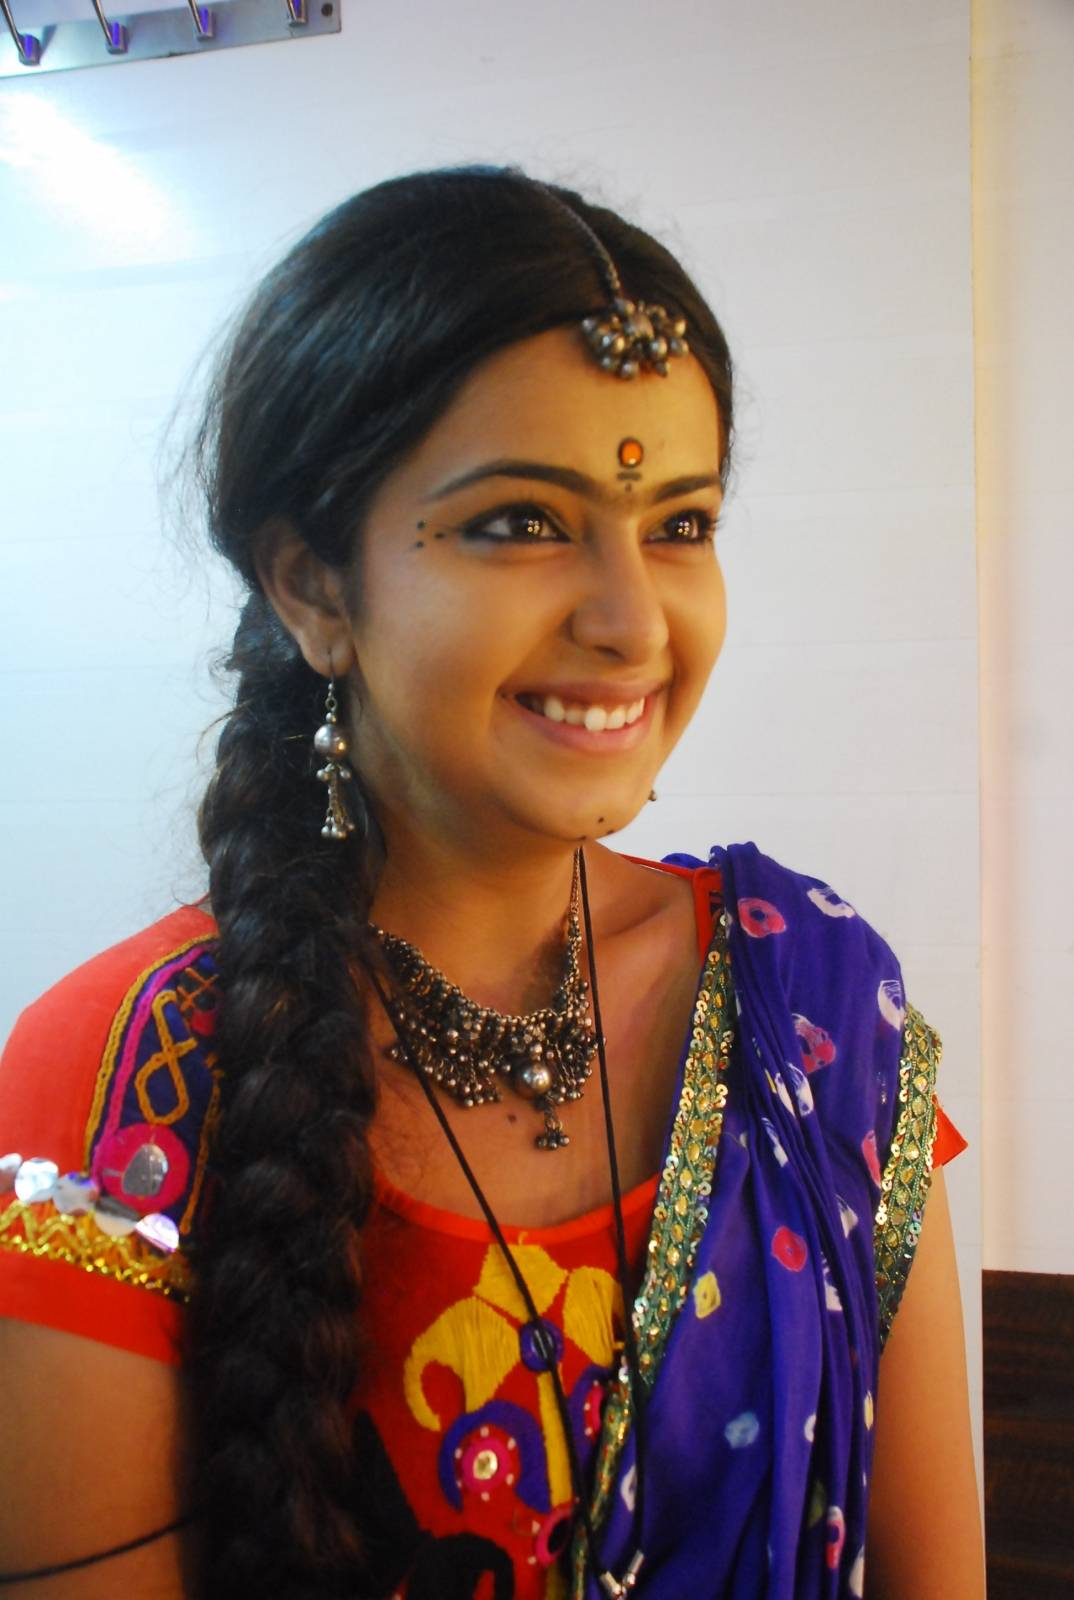 Decoded: Jhumki's look in Sasural Simar Ka